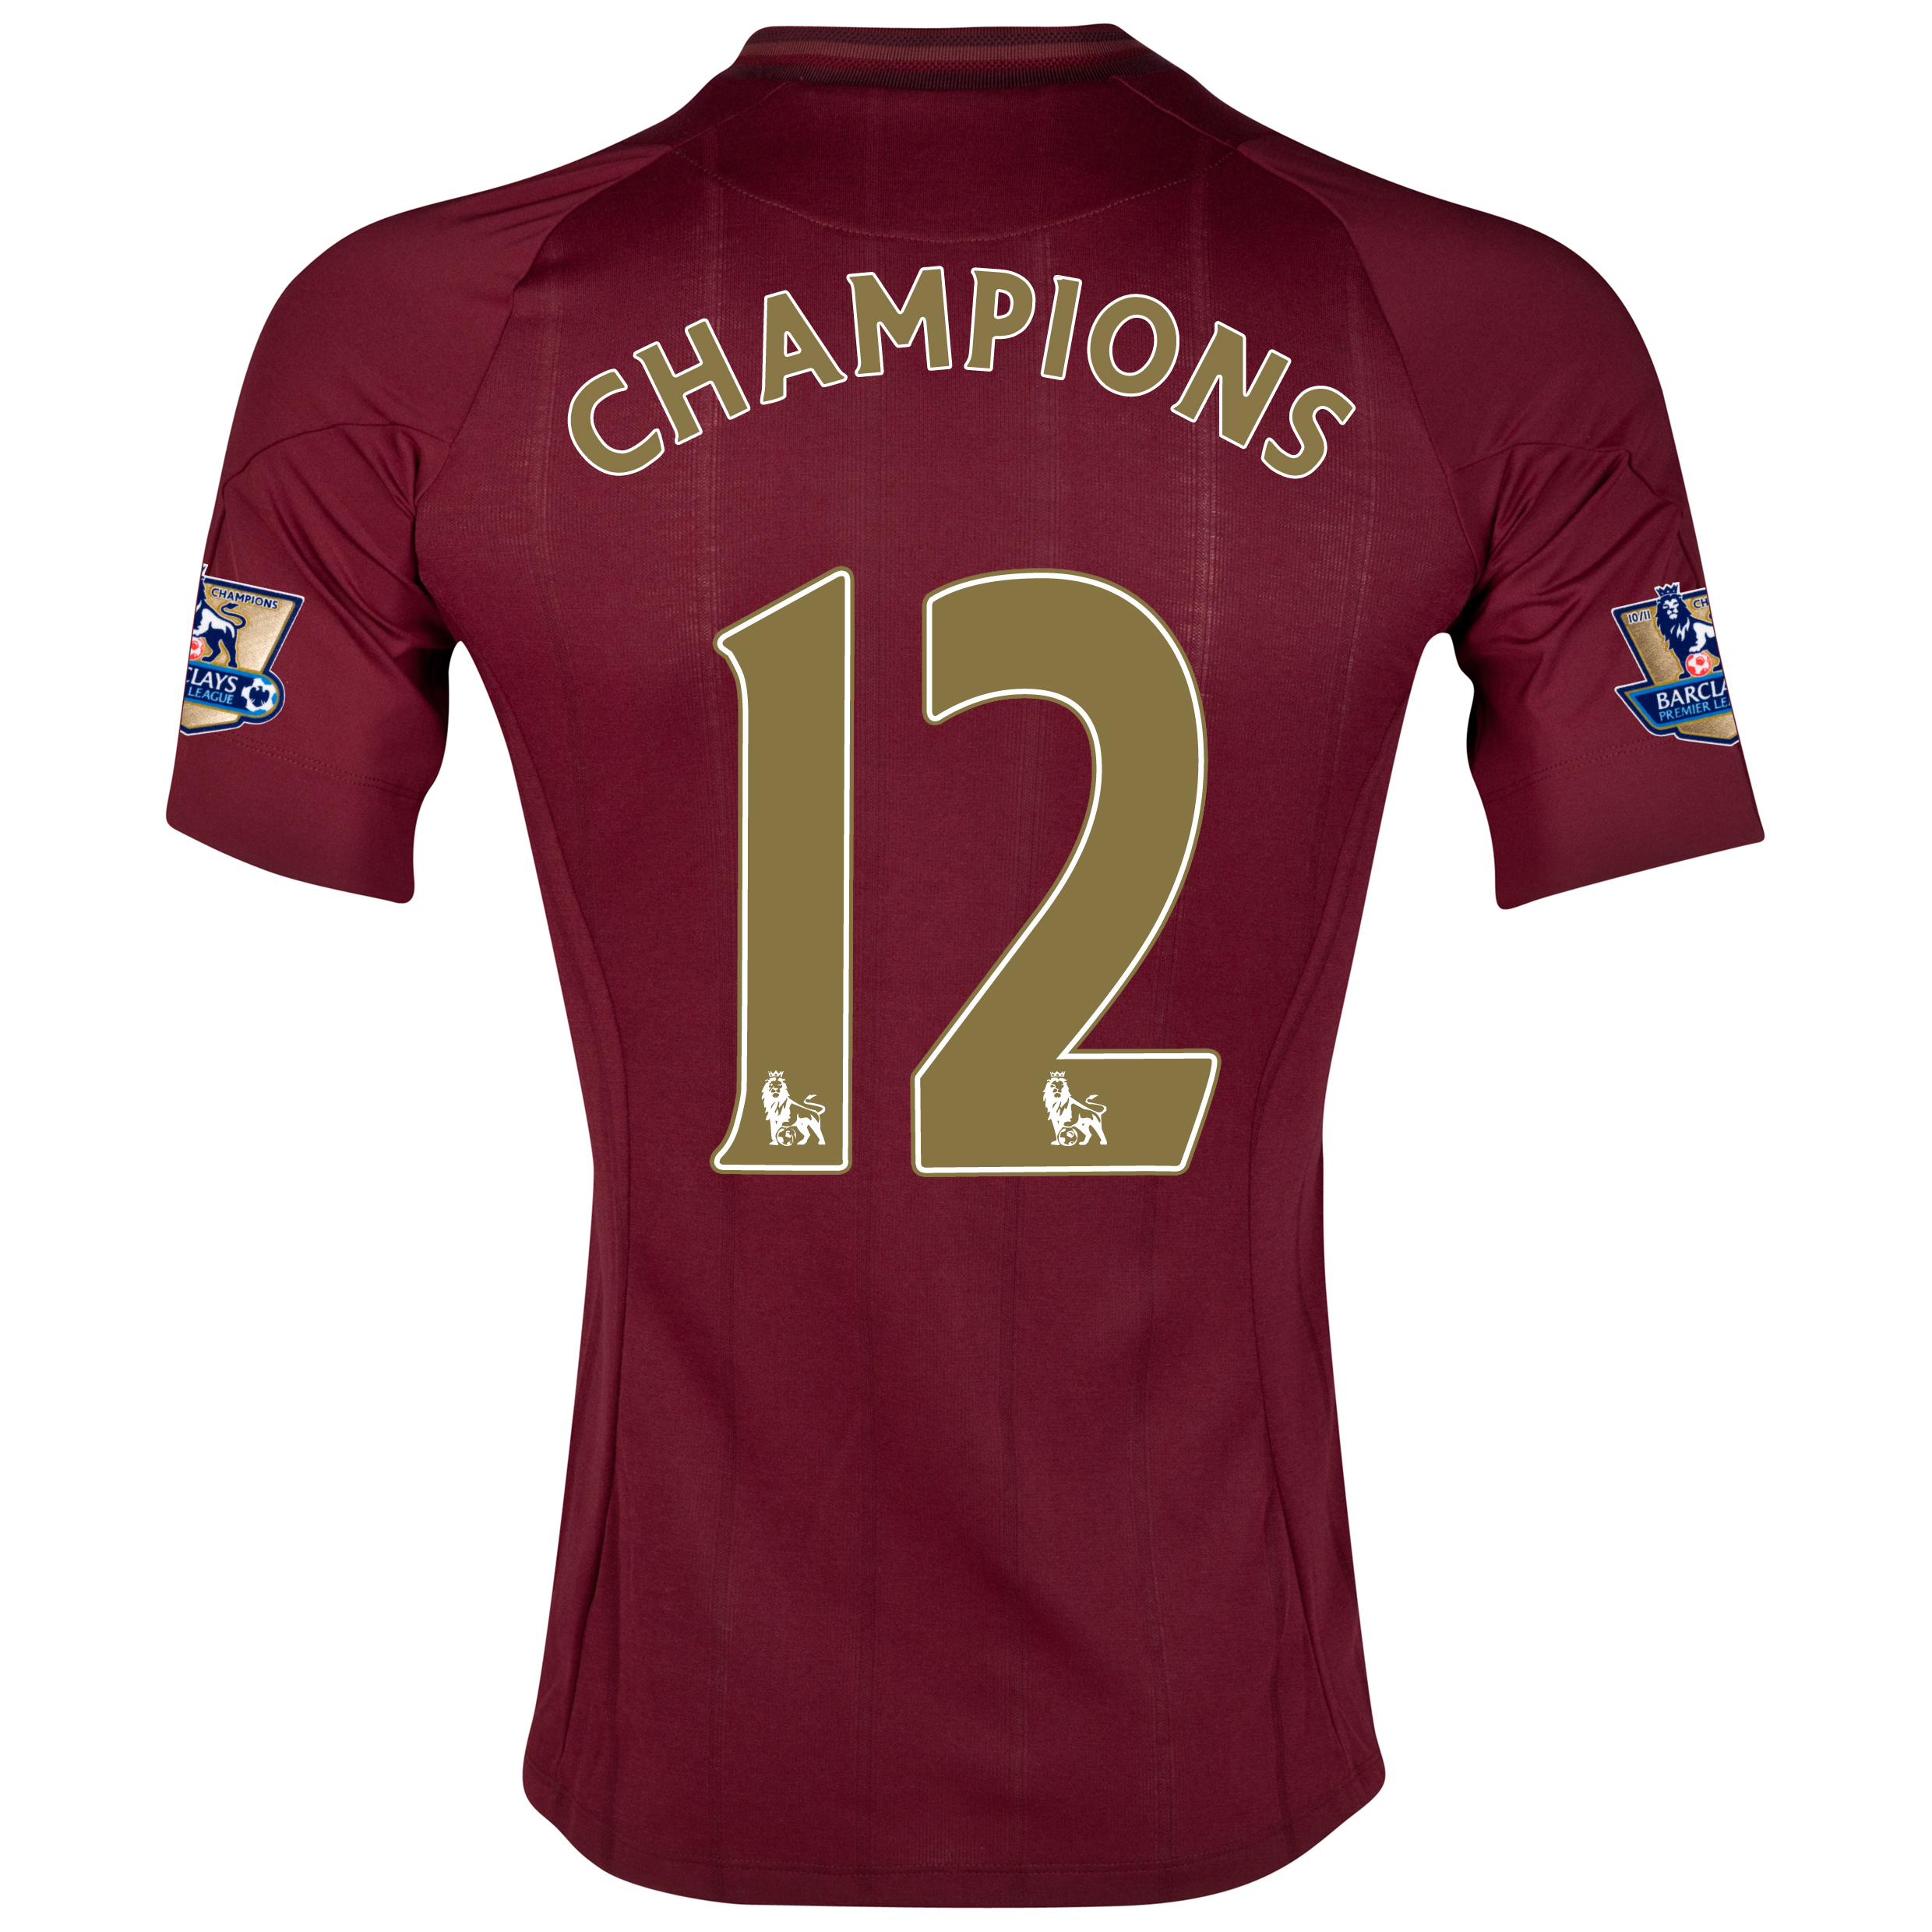 Manchester City Away Shirt 2012/13 with Champions 12 printing and Premier League Champions Badges - Junior